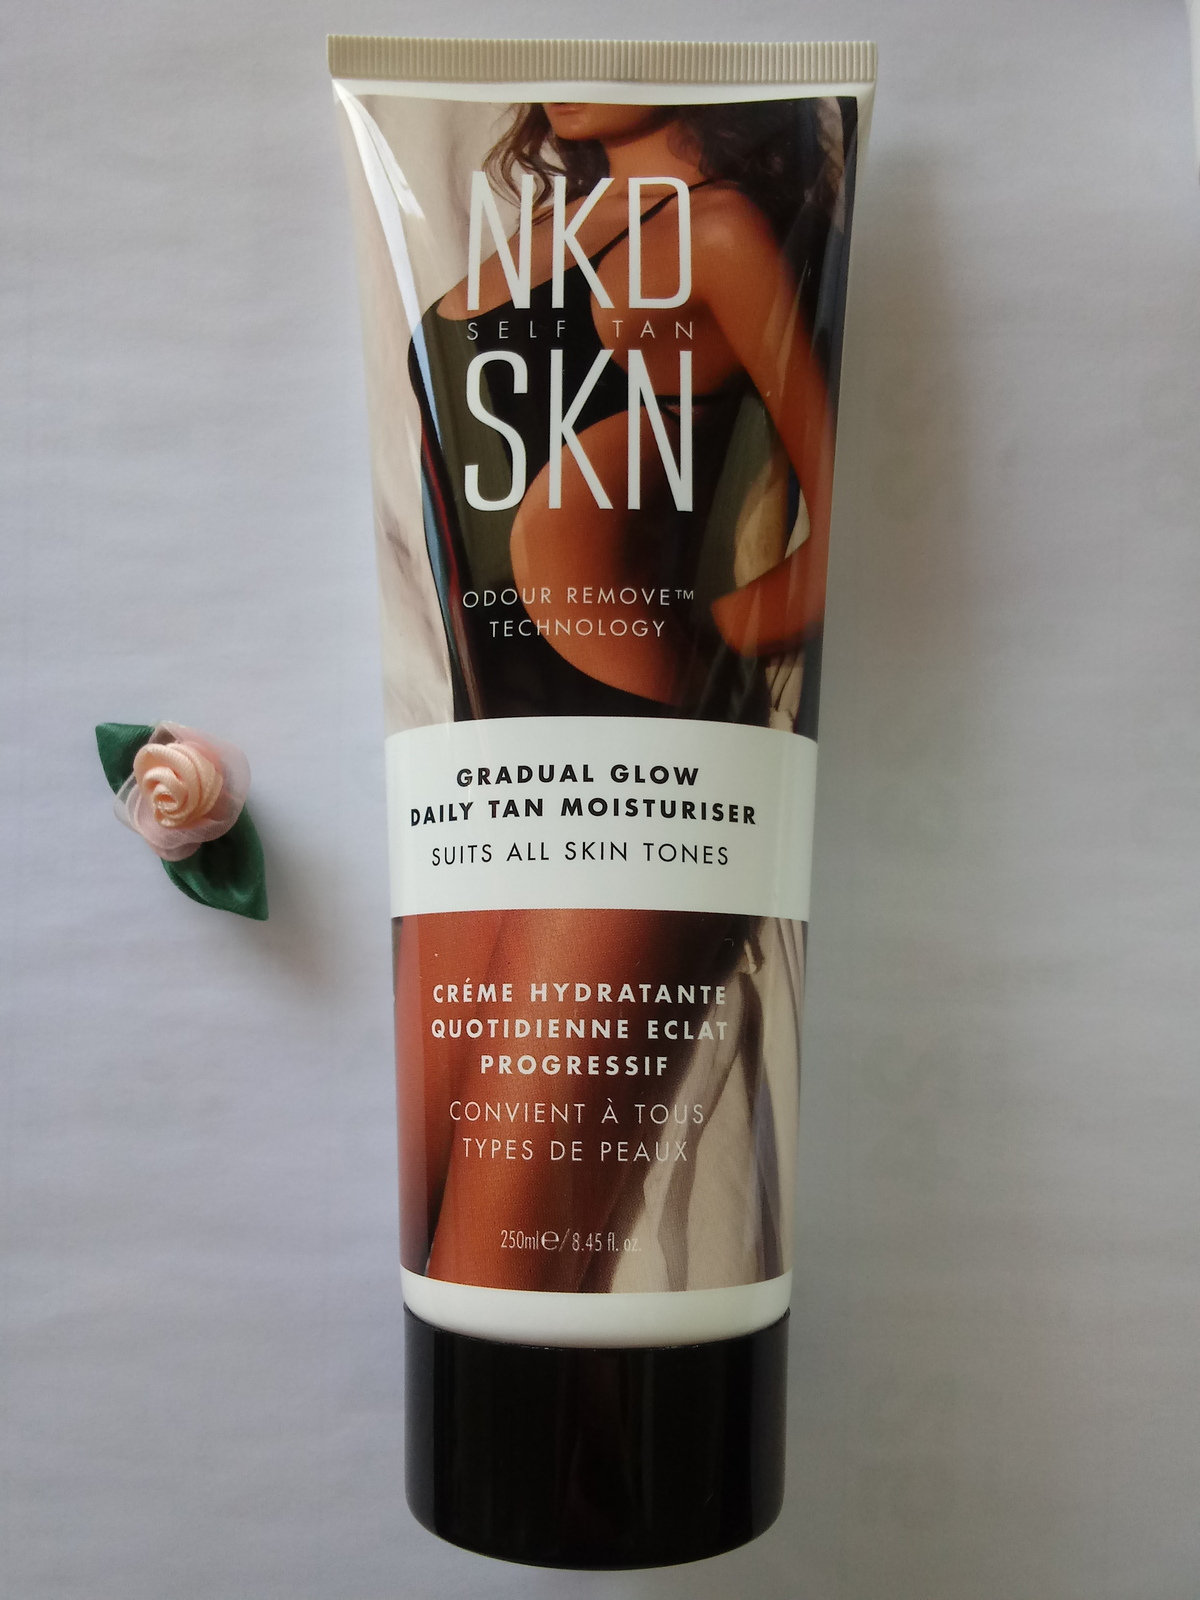 NKD SELF TAN SKN GRADUAL GLOW